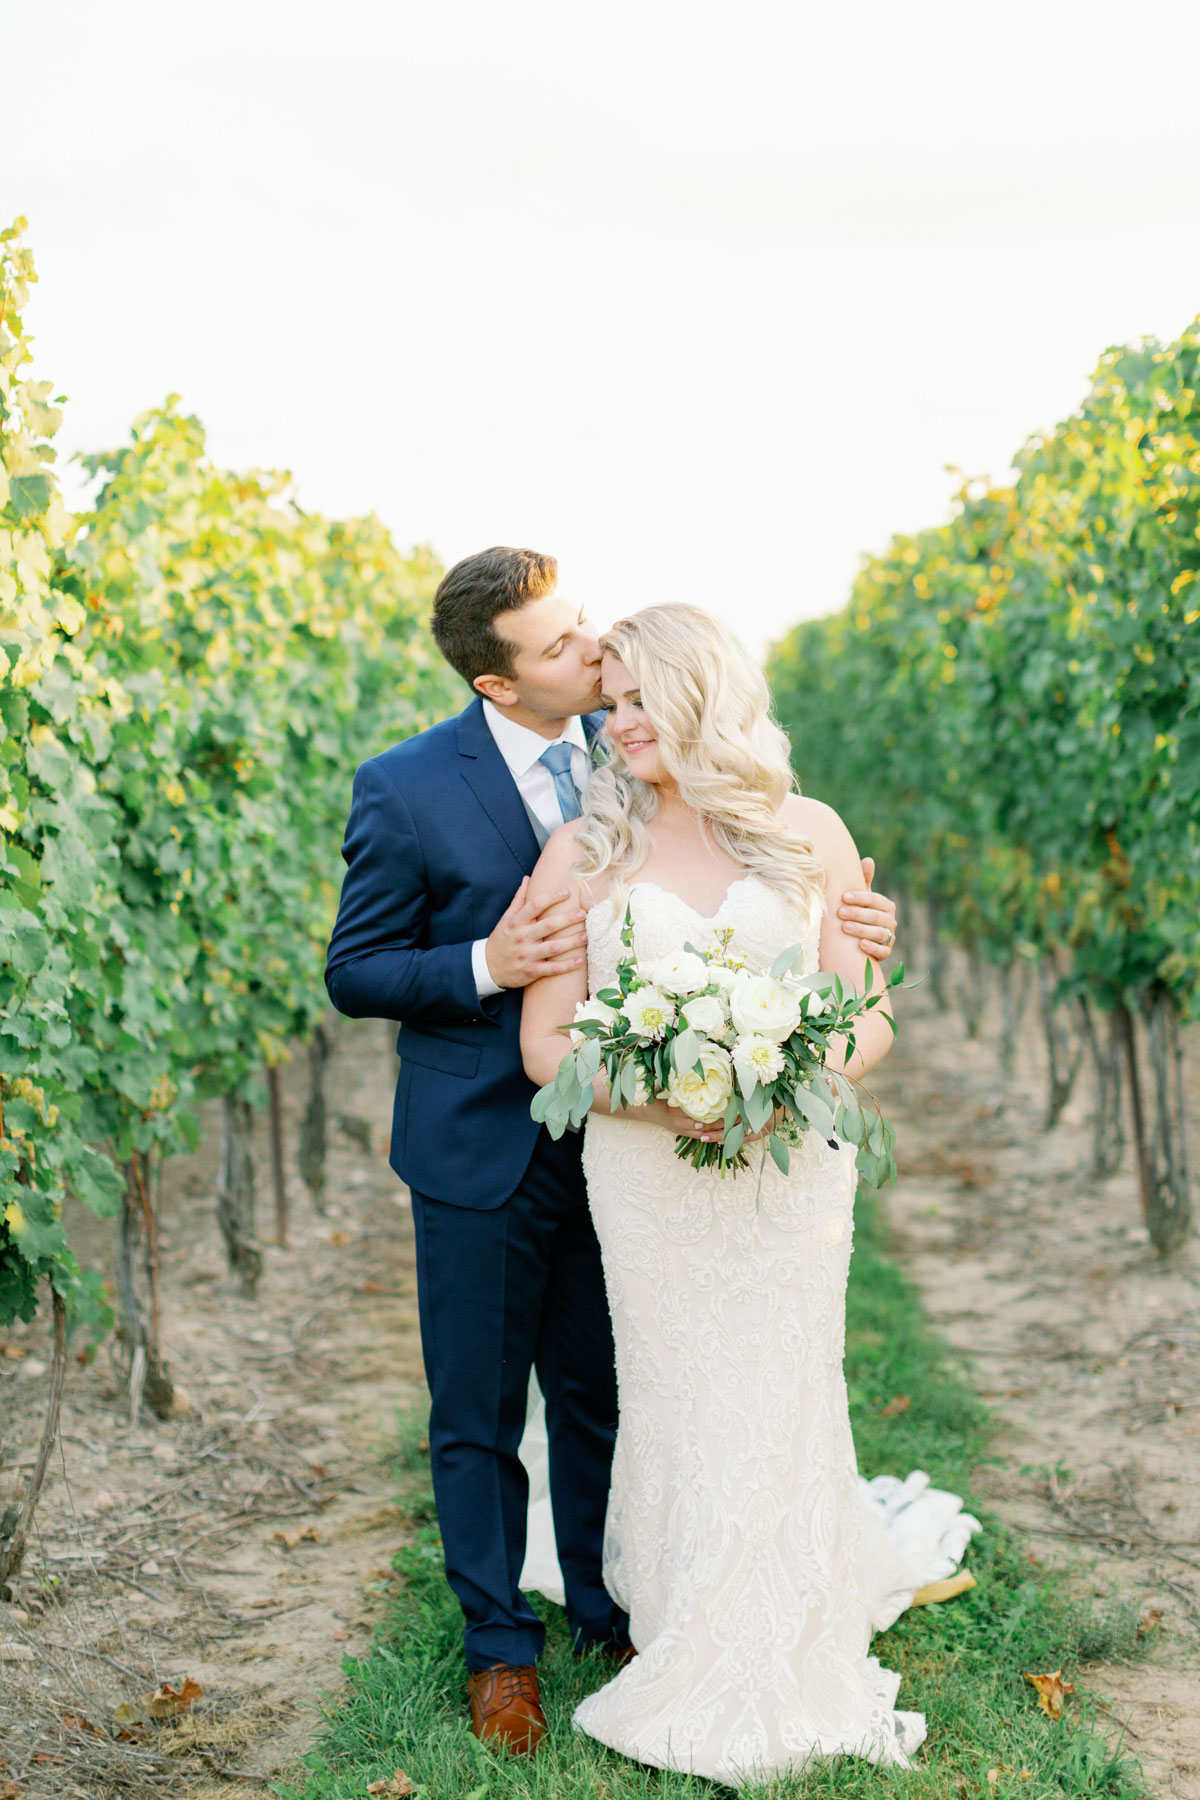 vineyard-bride-kayla-yestal-outdoor-summer-wedding-honsberger-estate-winery-niagara-toronto-vendor-0043.jpg